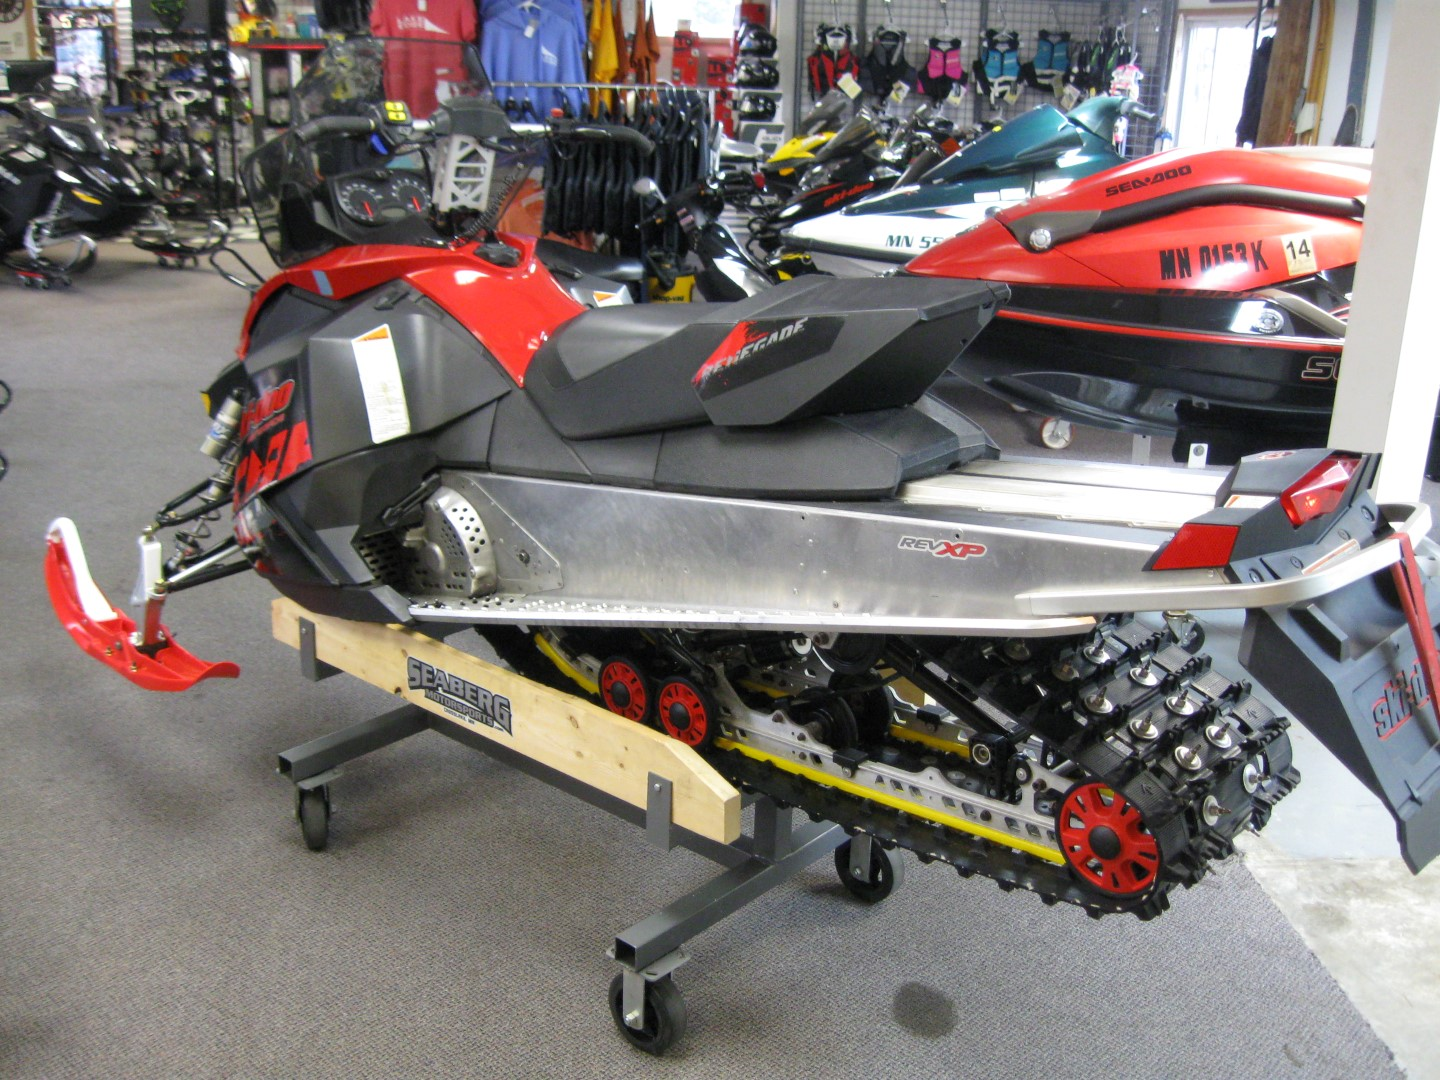 2011 Ski-Doo Renegade 800 XP snowmobile for sale Maple grove MN Seaberg motorsports left rear quarter red black